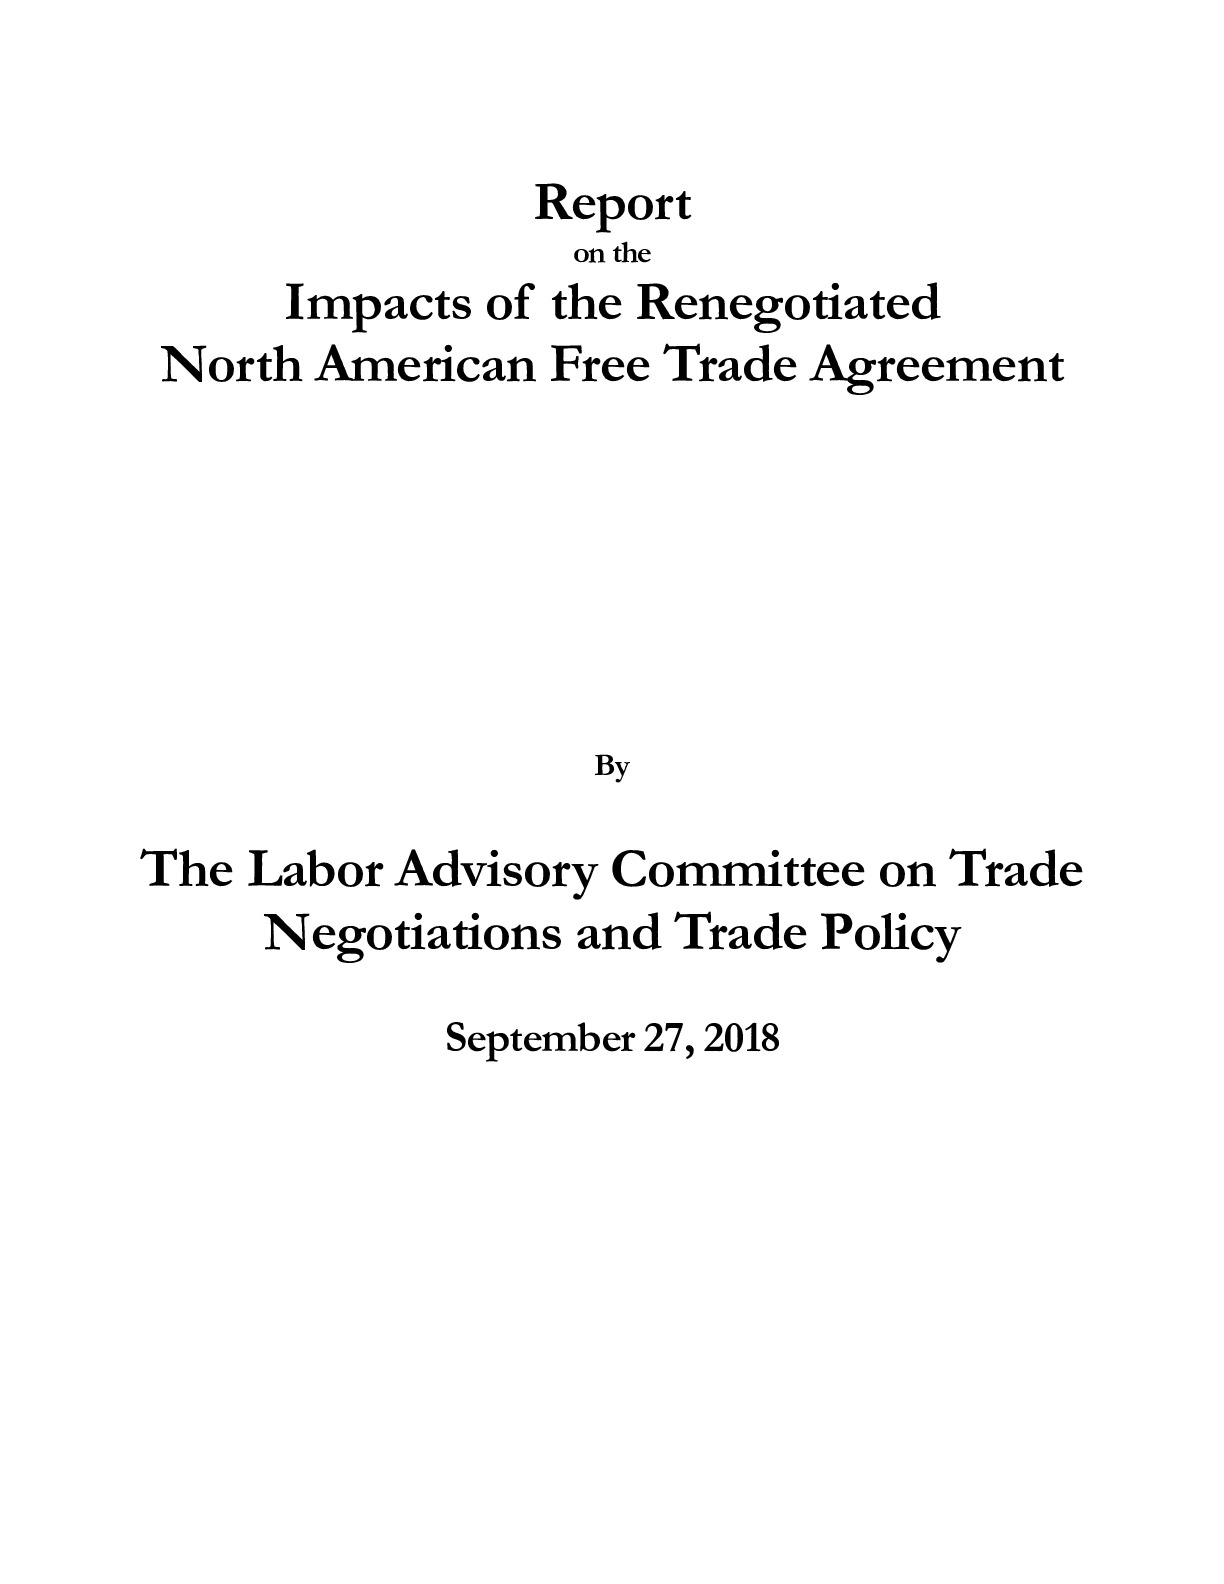 Report On The Impacts Of The Renegotiated North American Free Trade